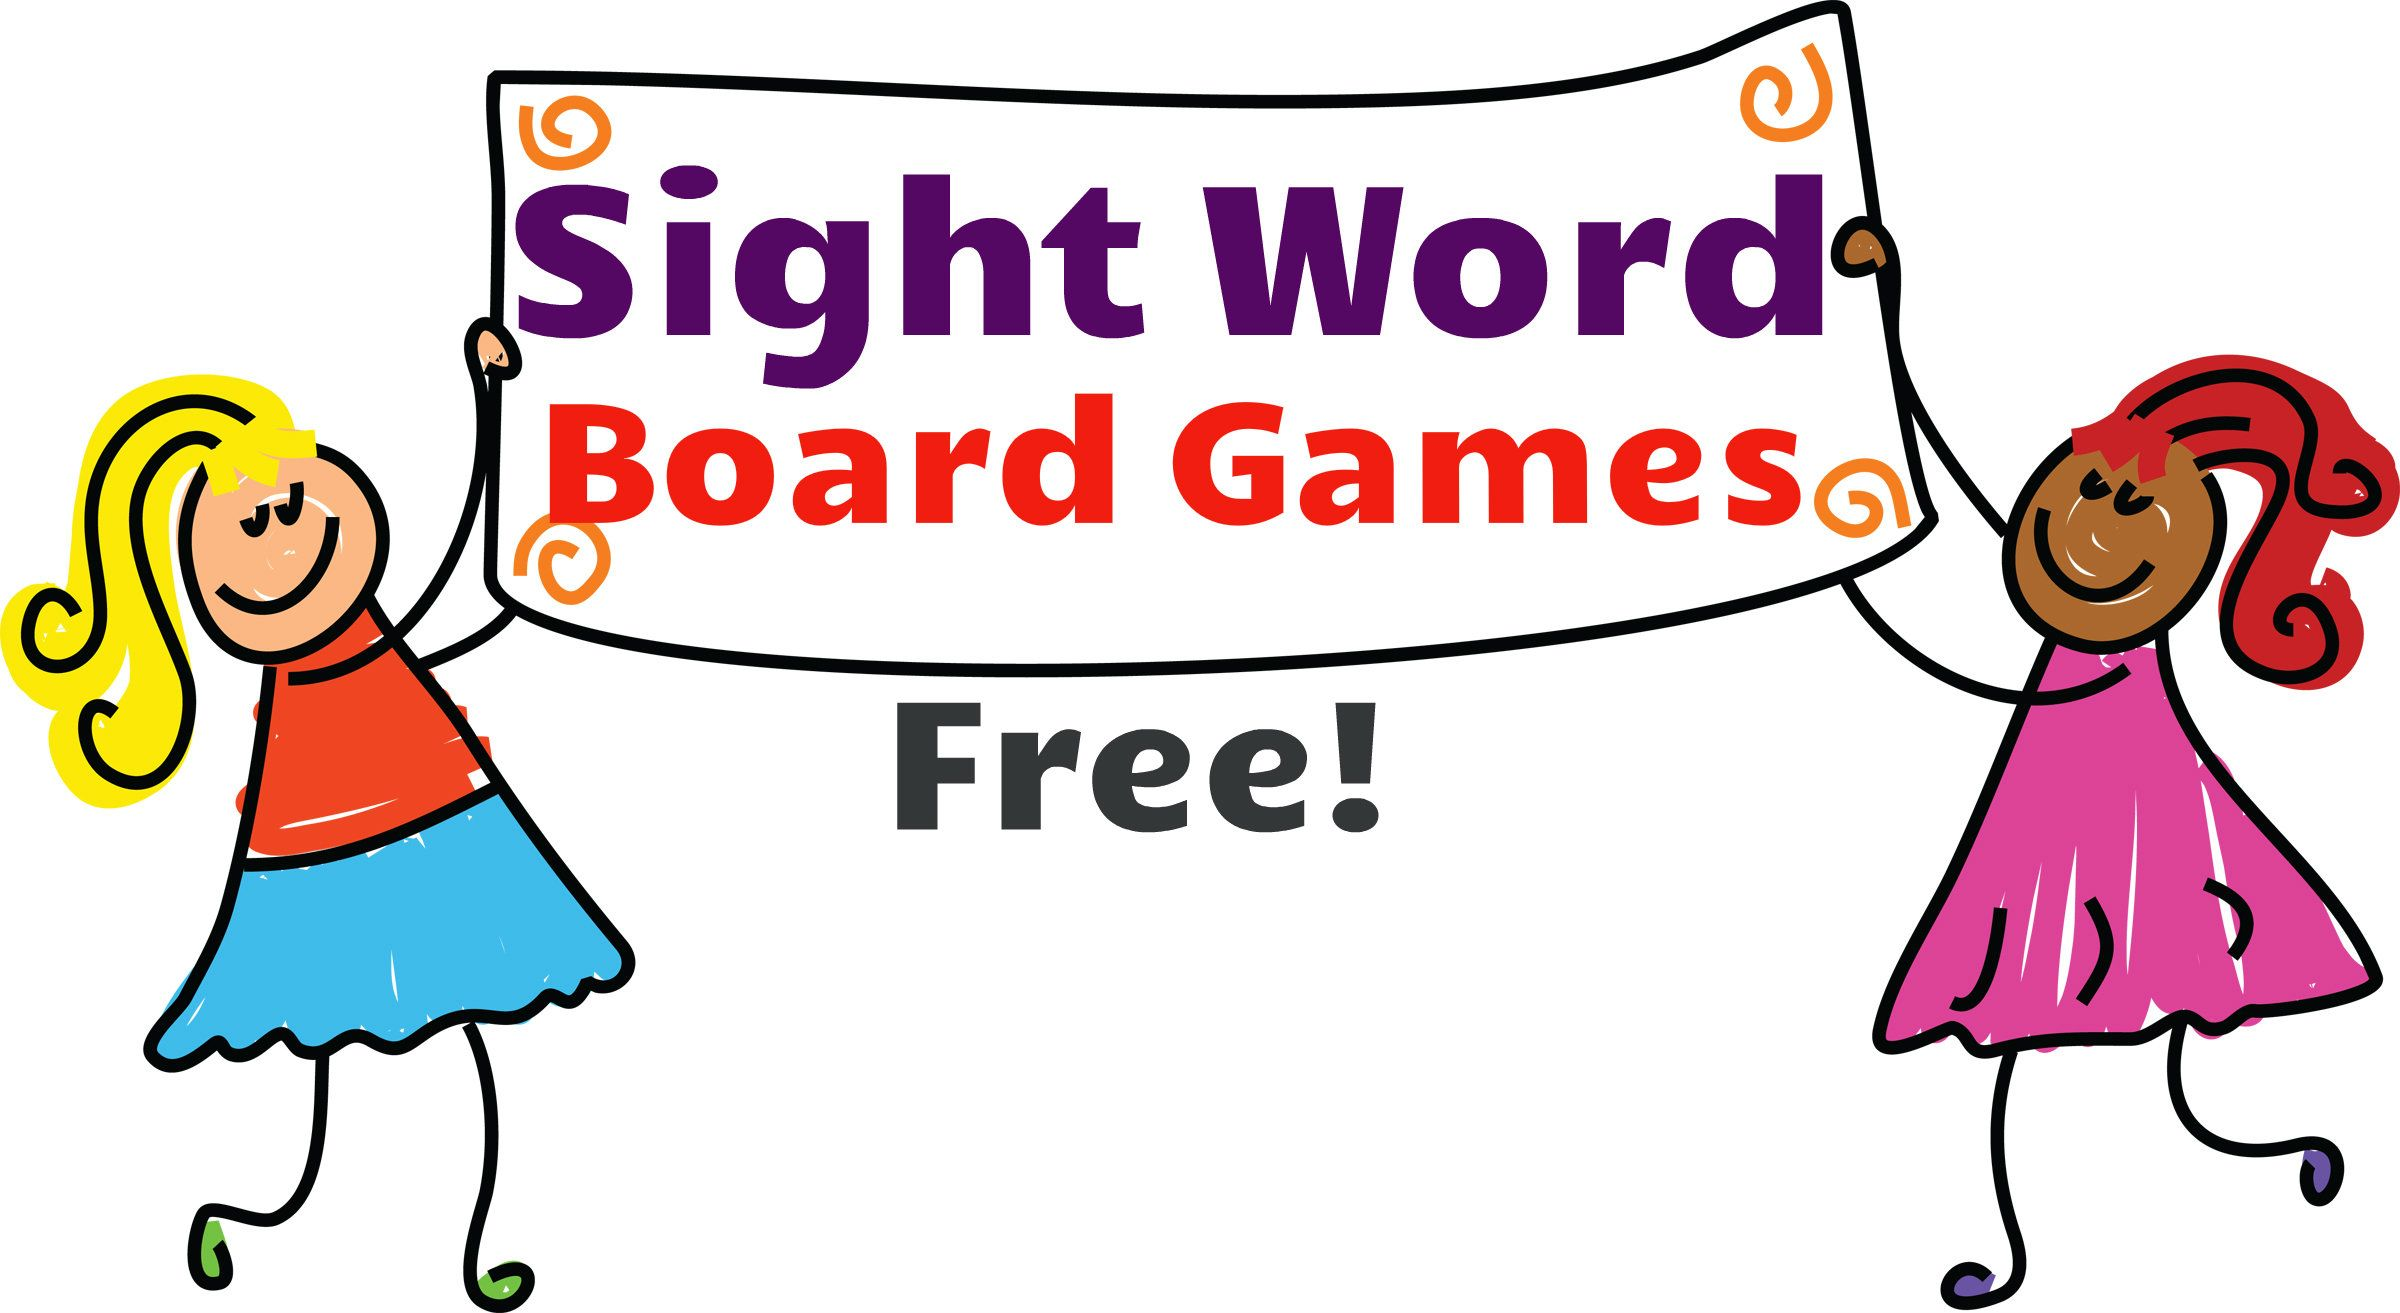 Worksheet Free Site Word Games 10 images about sight words on pinterest miss kindergarten all songs and songs